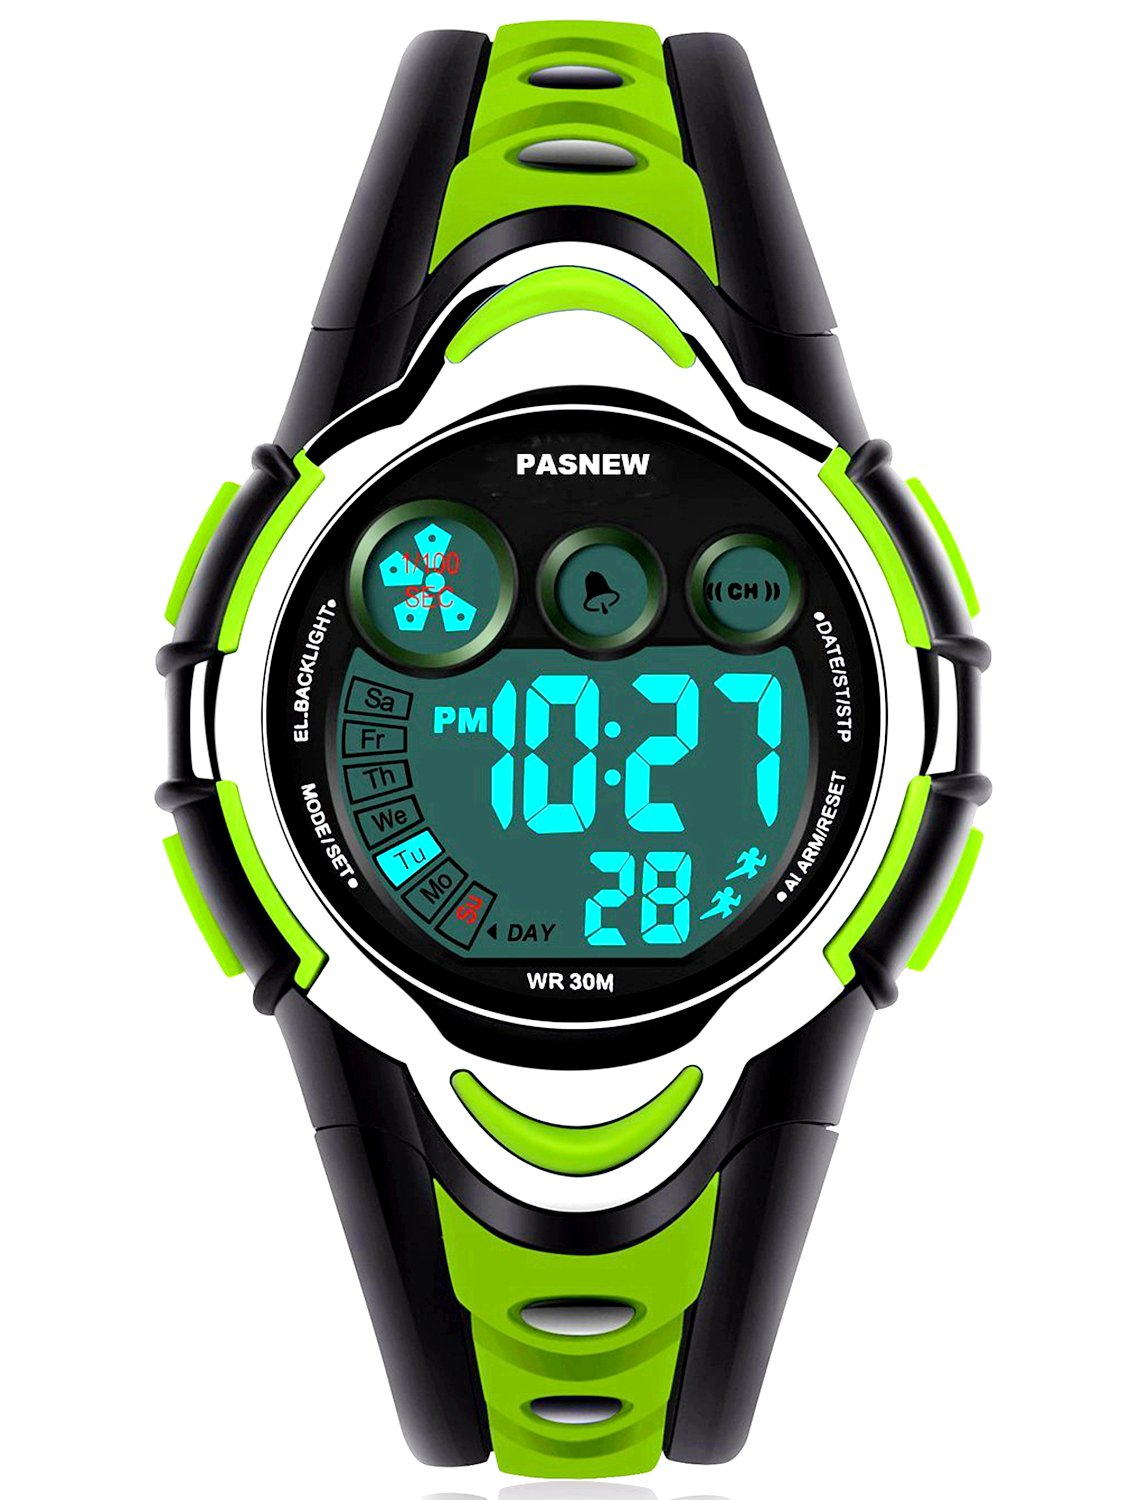 Waterproof Boys/Girls/Kids/Childrens Digital Sports Watches for 5-12 Years Old by New Brand Mall